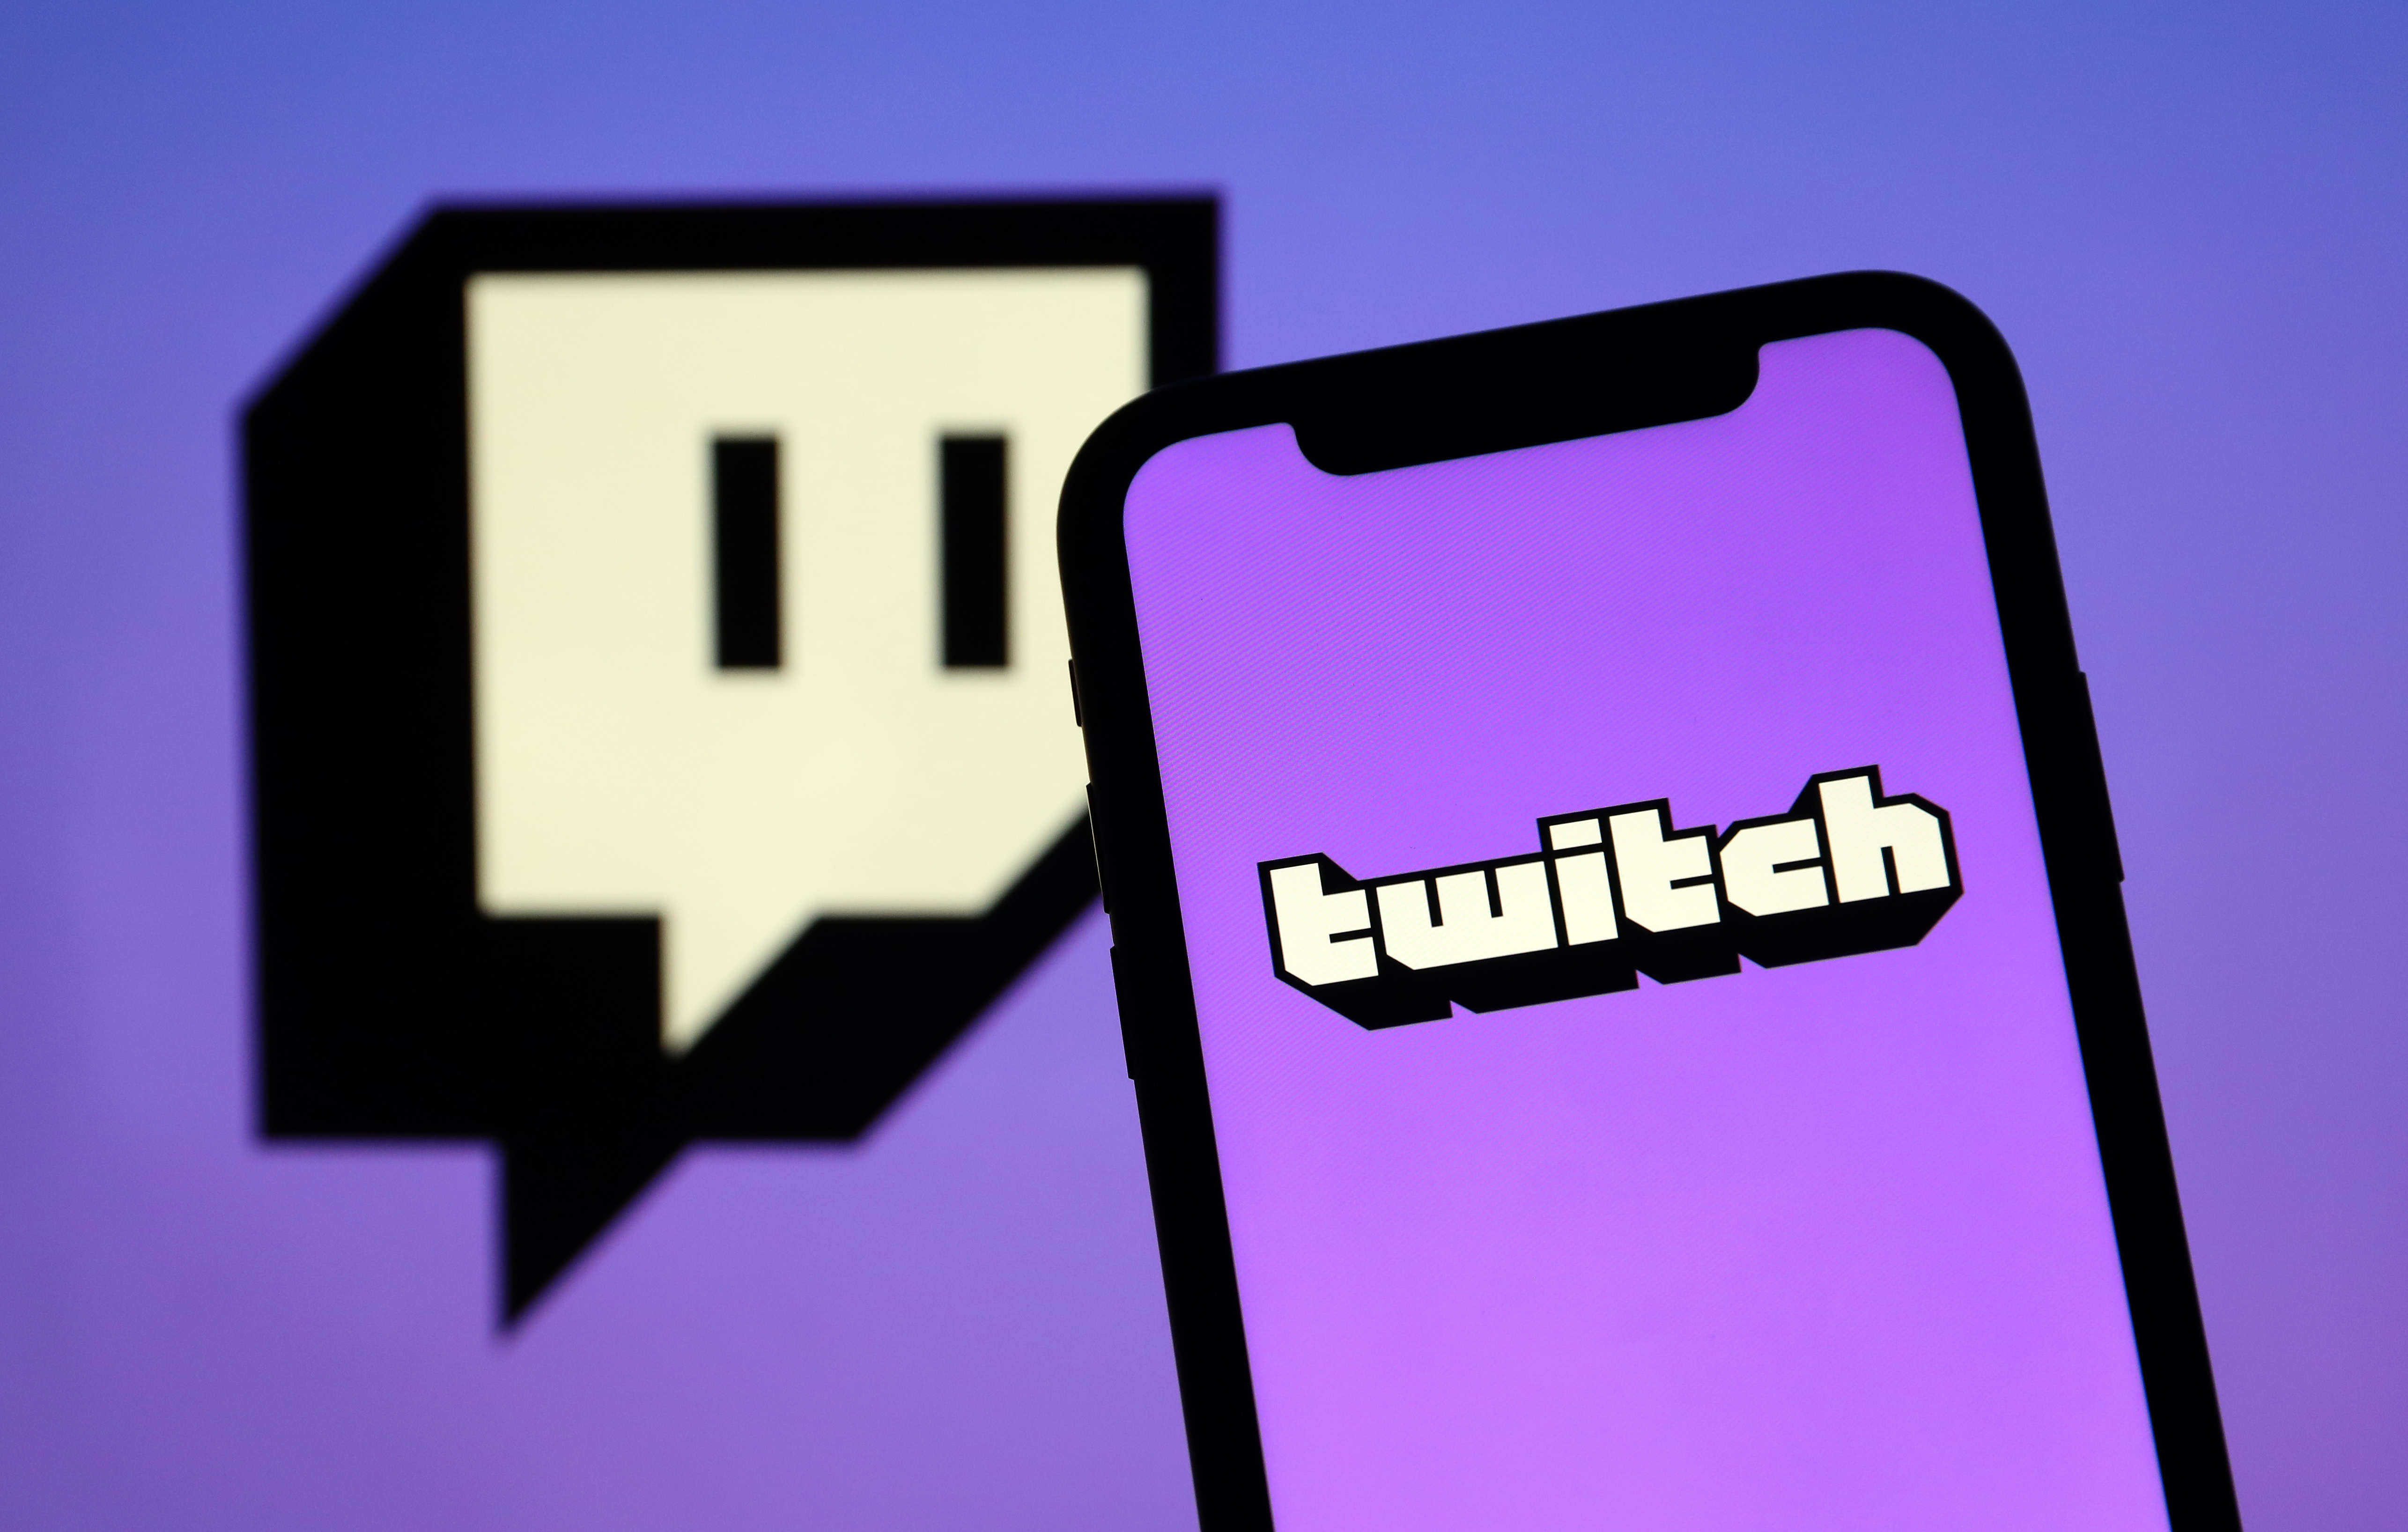 Twitch says no passwords were leaked in security breach